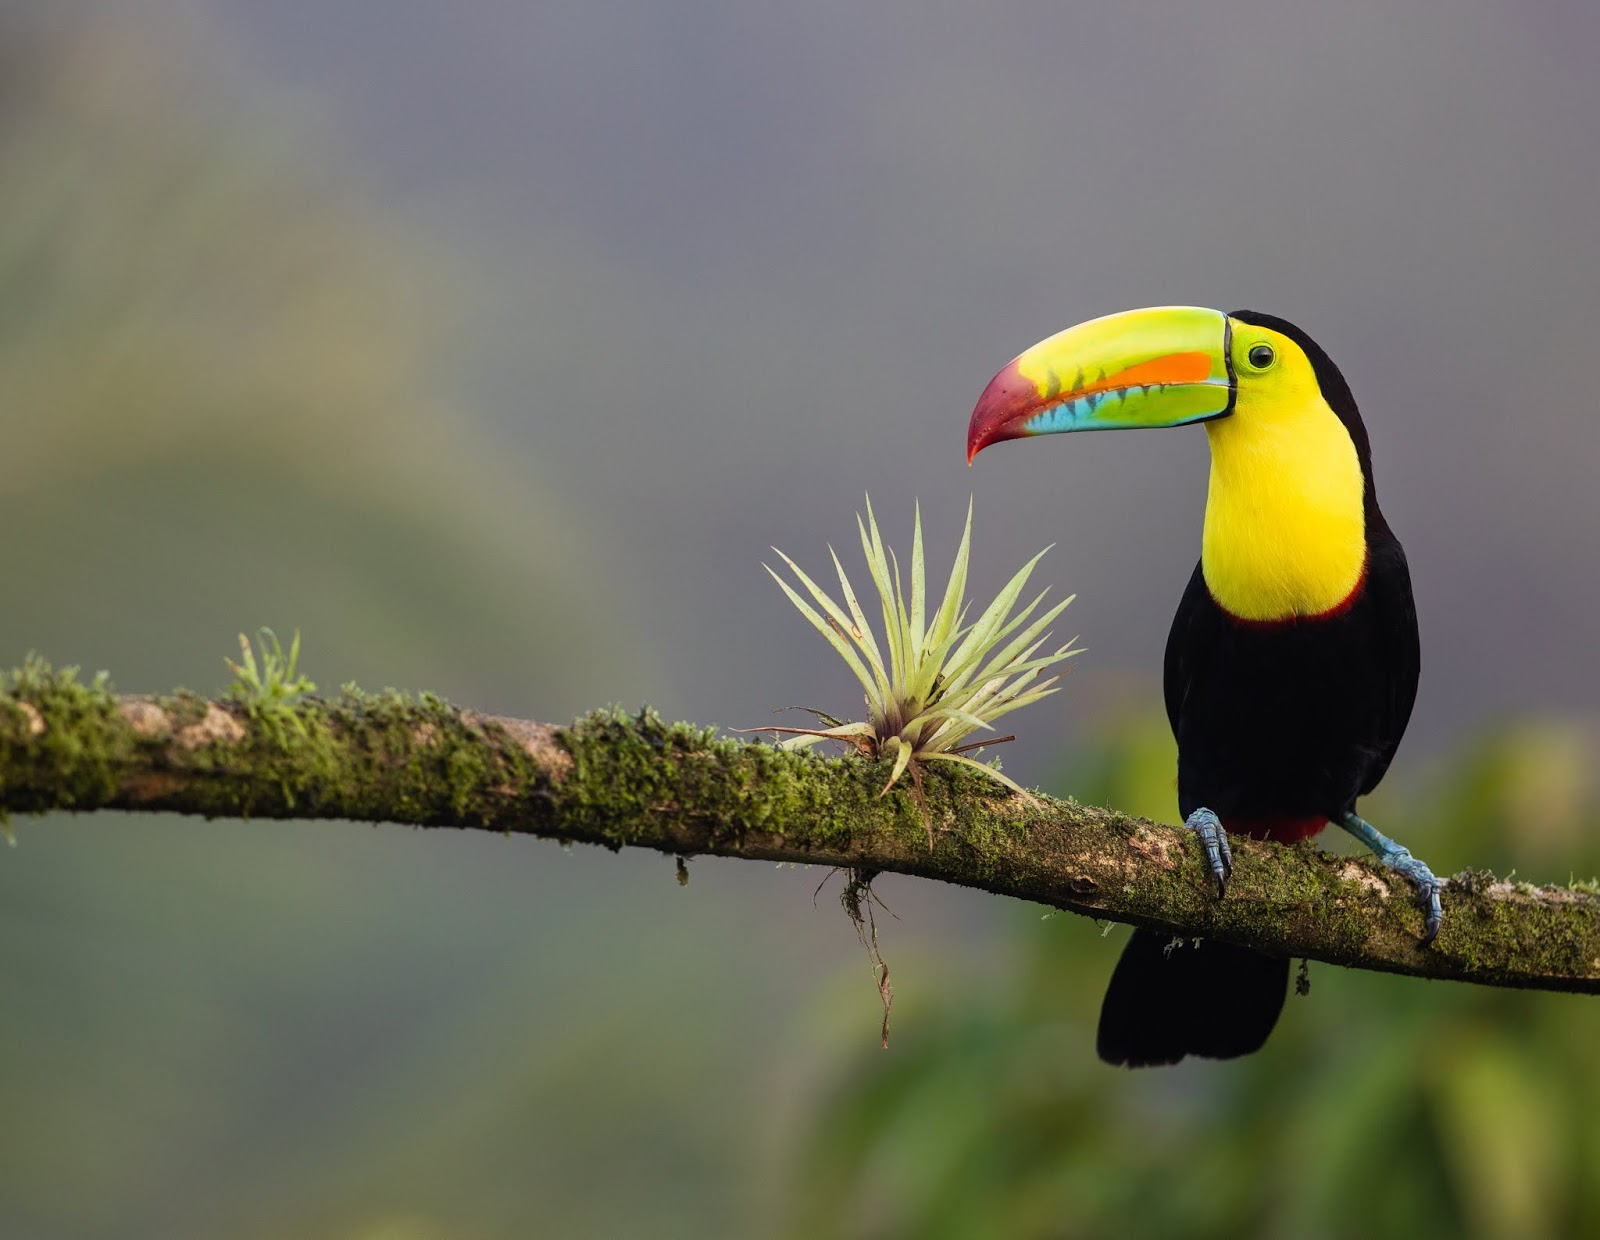 The keel-billed toucan the colorful Latin American member of toucan family